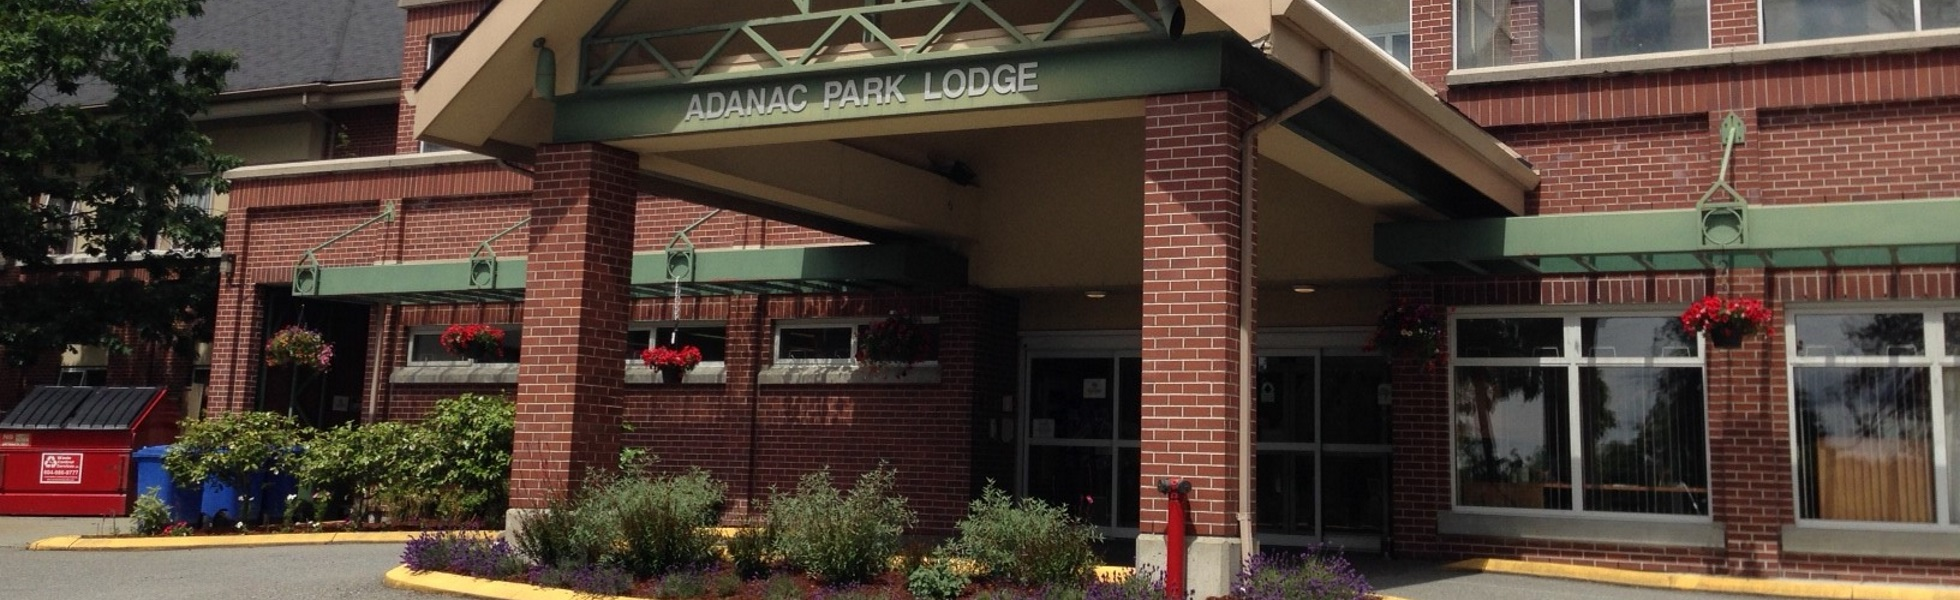 Adanac-Parkl-Lodge-entry1